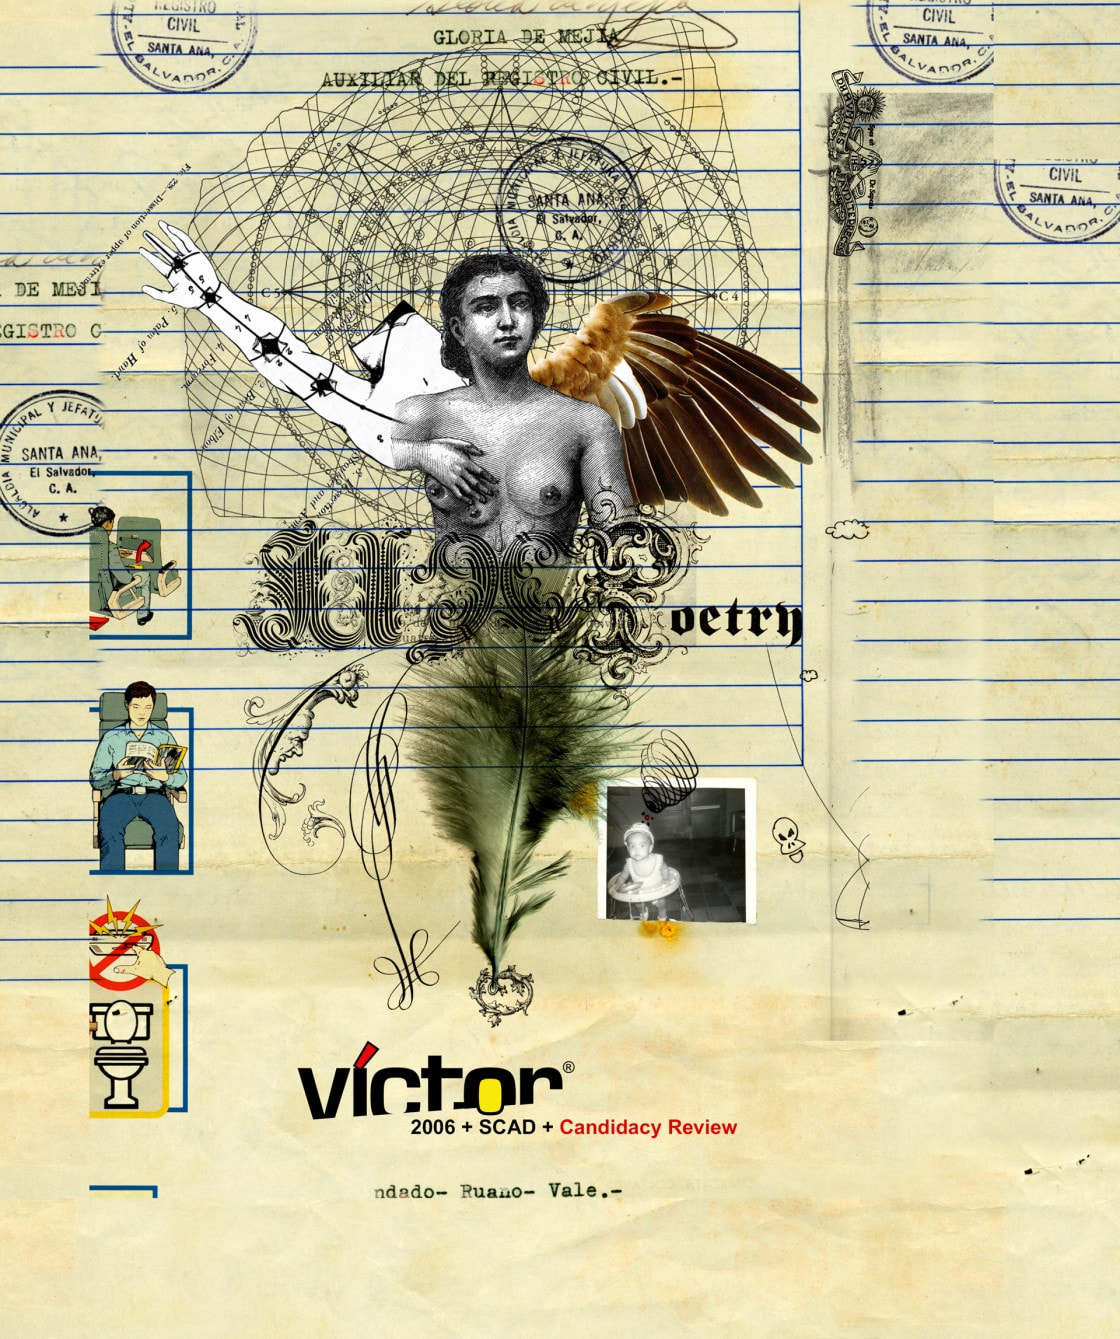 passport-victor-ruano